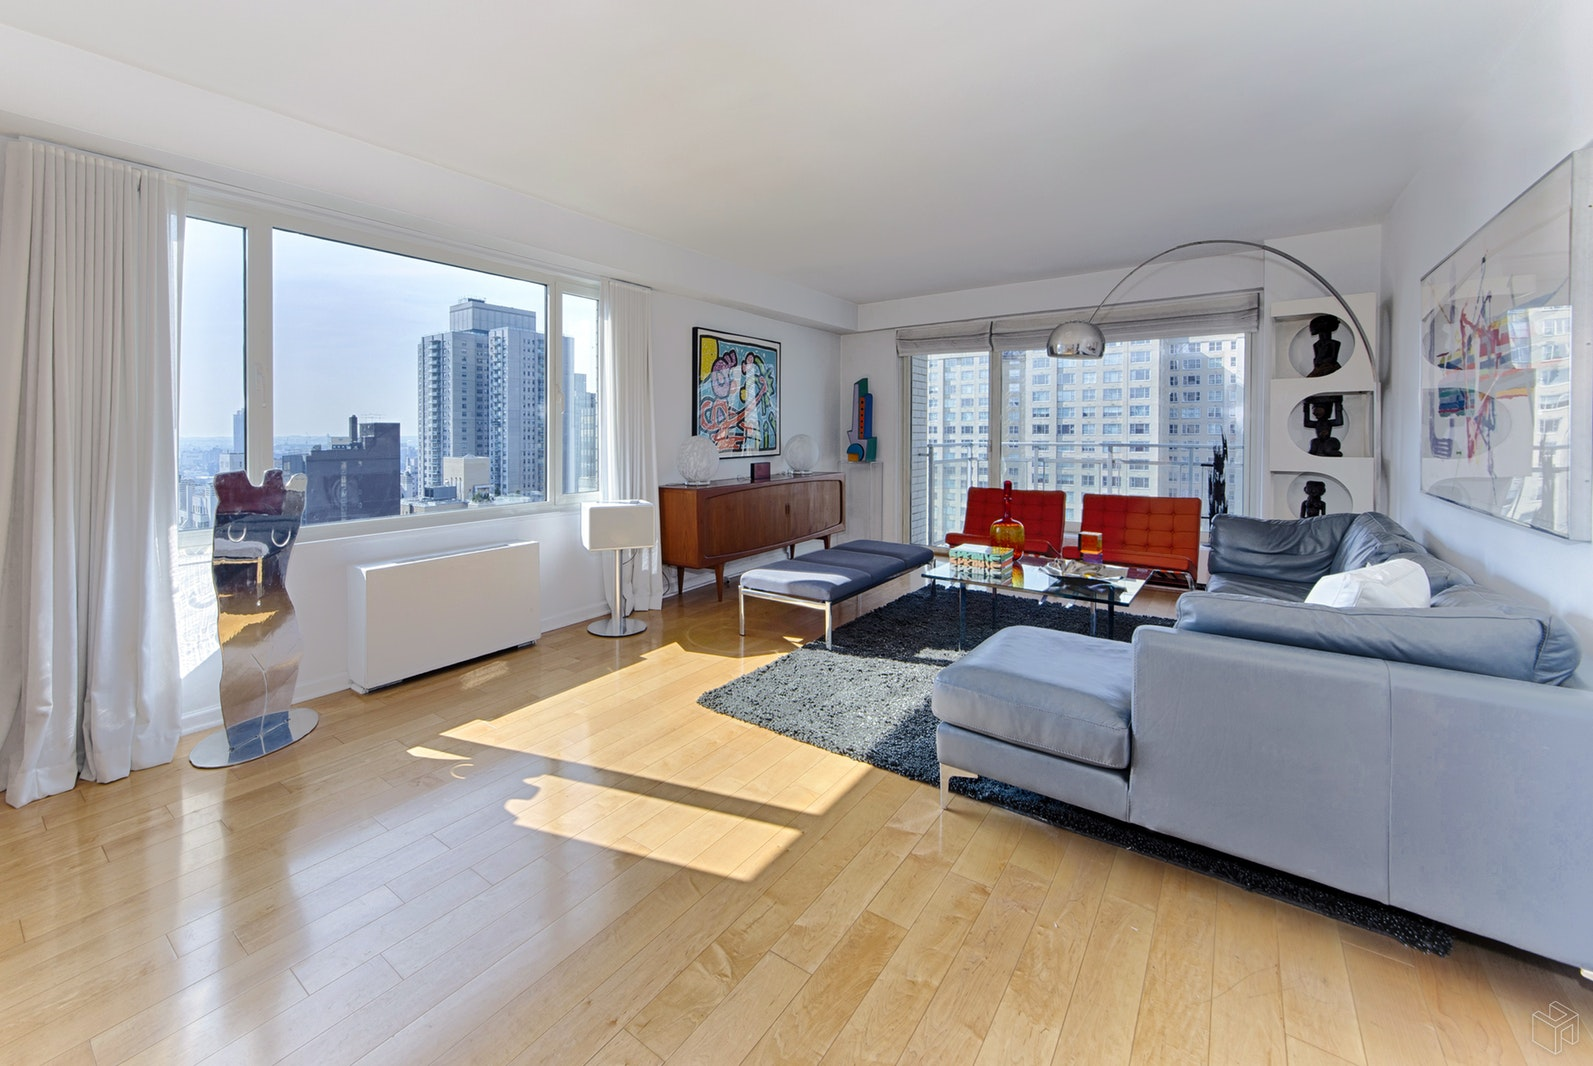 303 East 57th Street 25b, Midtown East, NYC, 10022, $690,000, Property For Sale, Halstead Real Estate, Photo 2